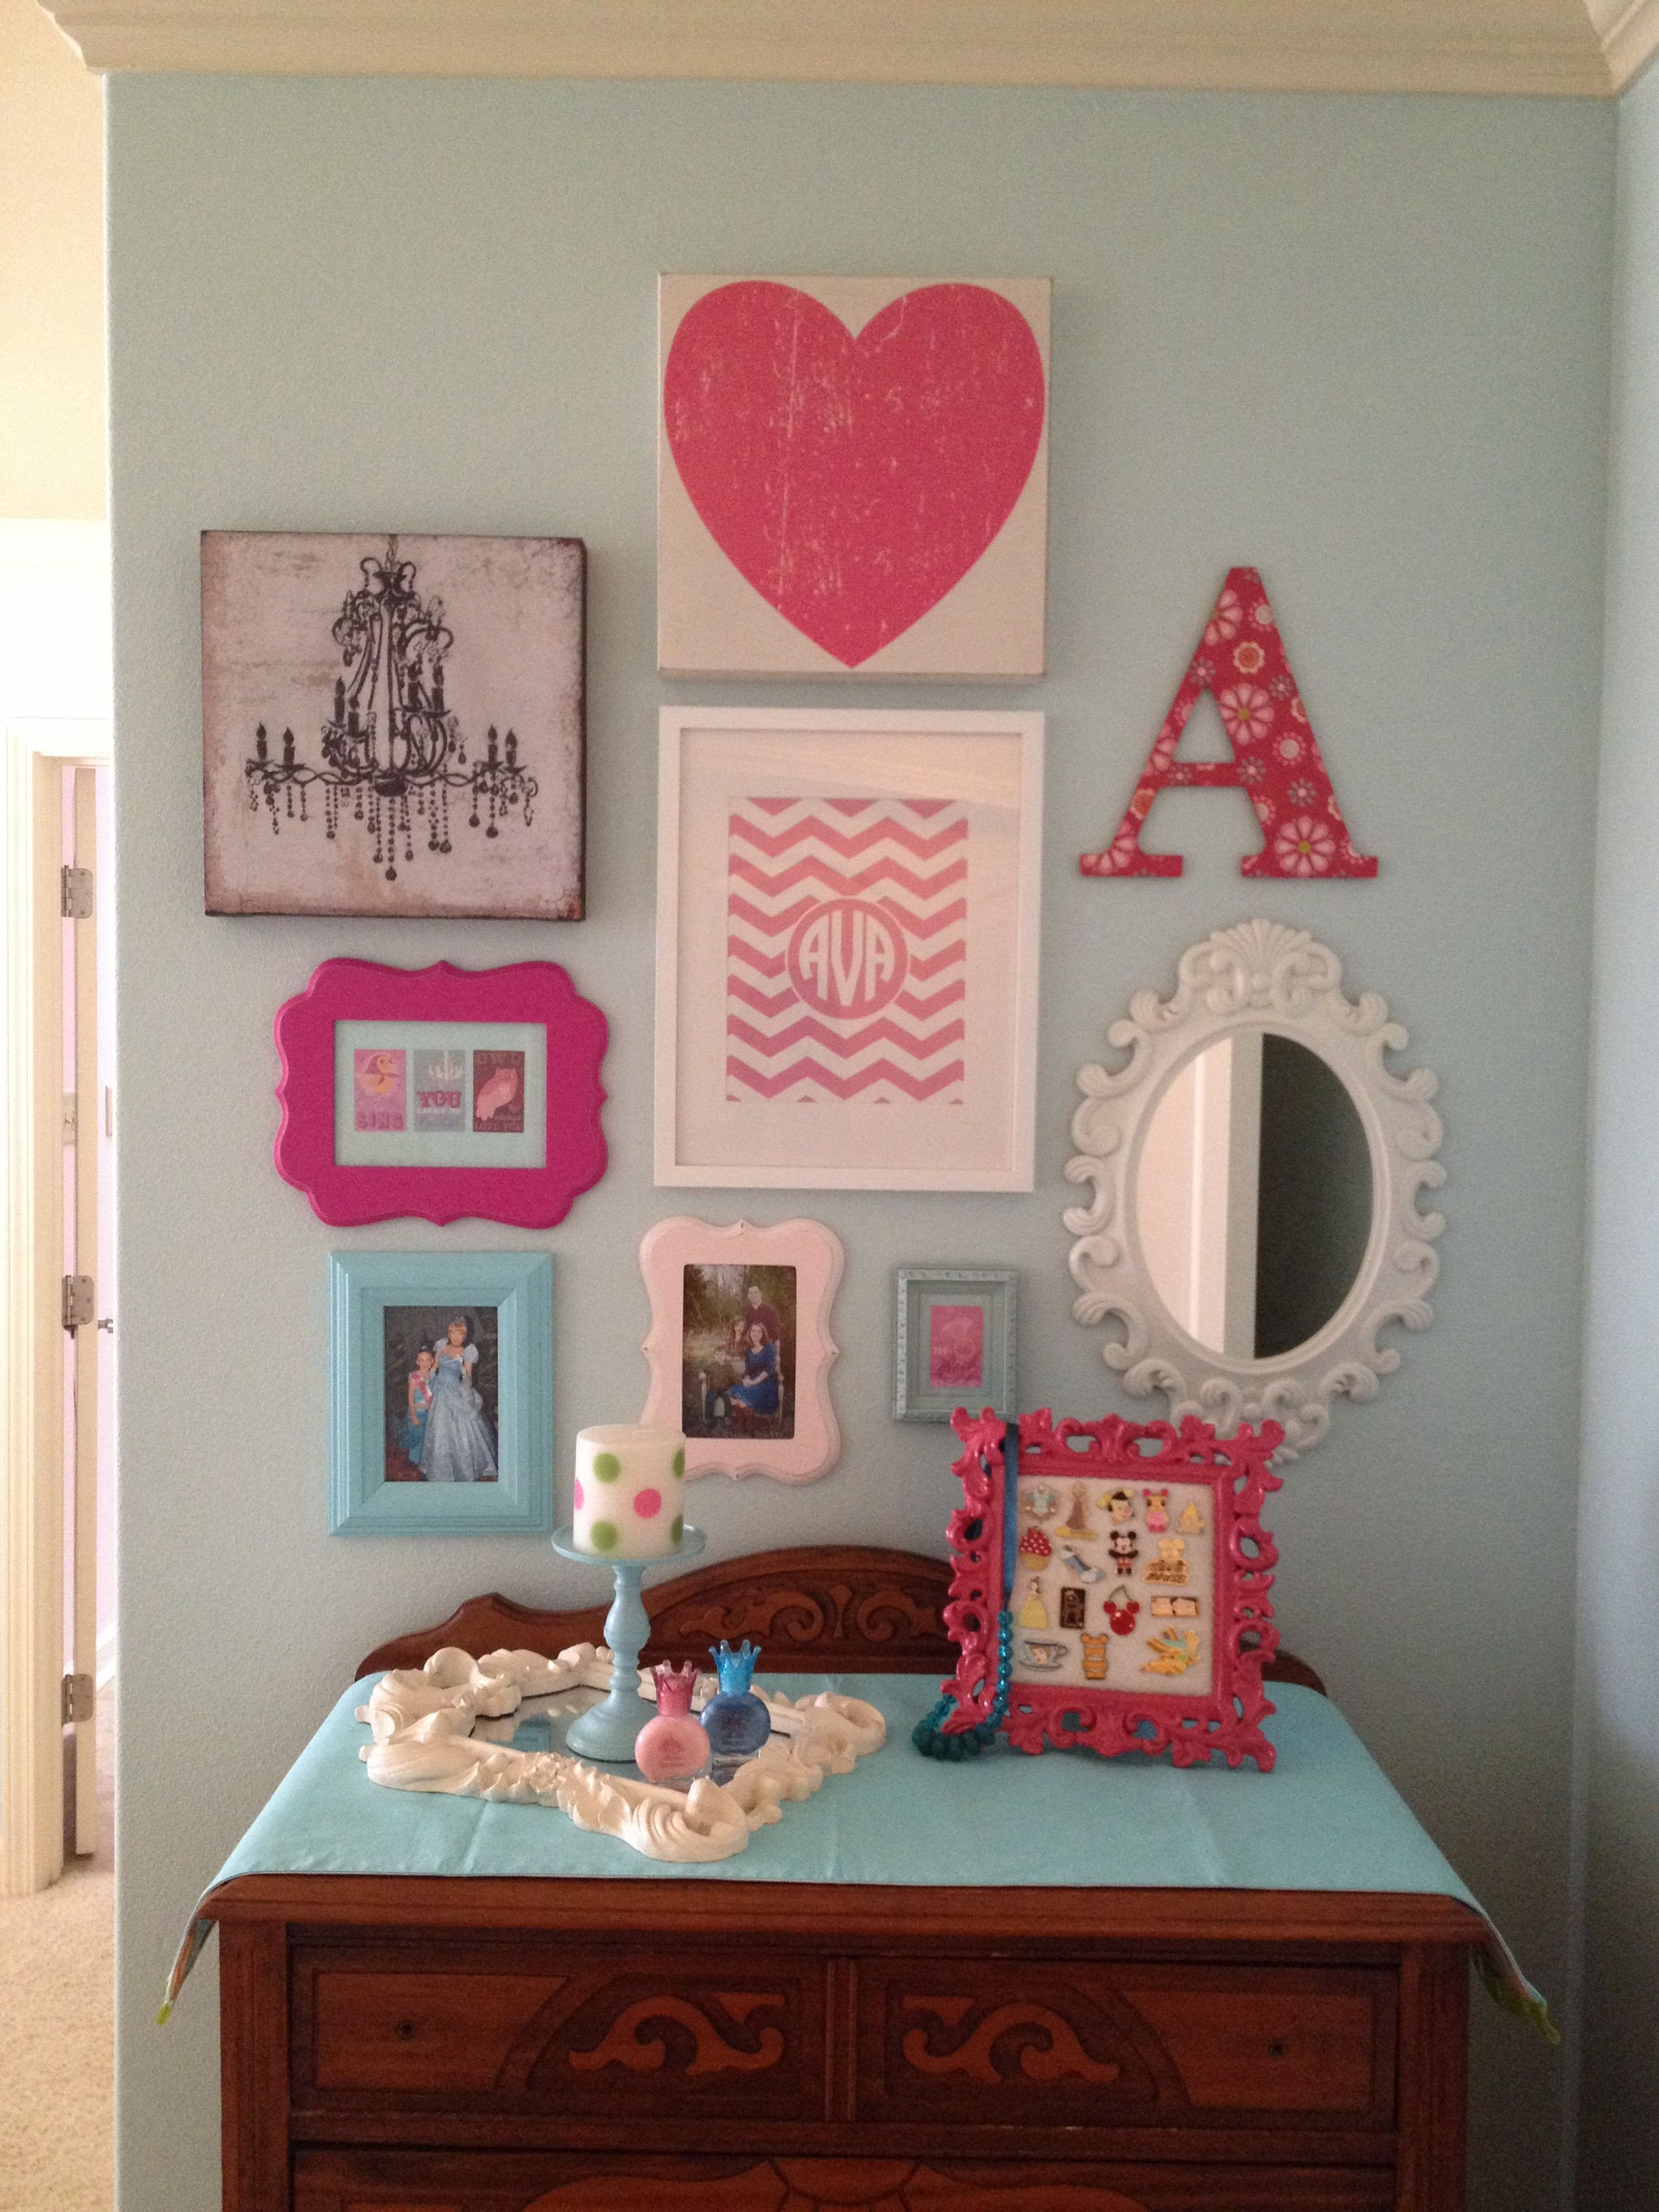 Lounge Chair for Teen Bedroom Lovely Girls Room Gallery Wall